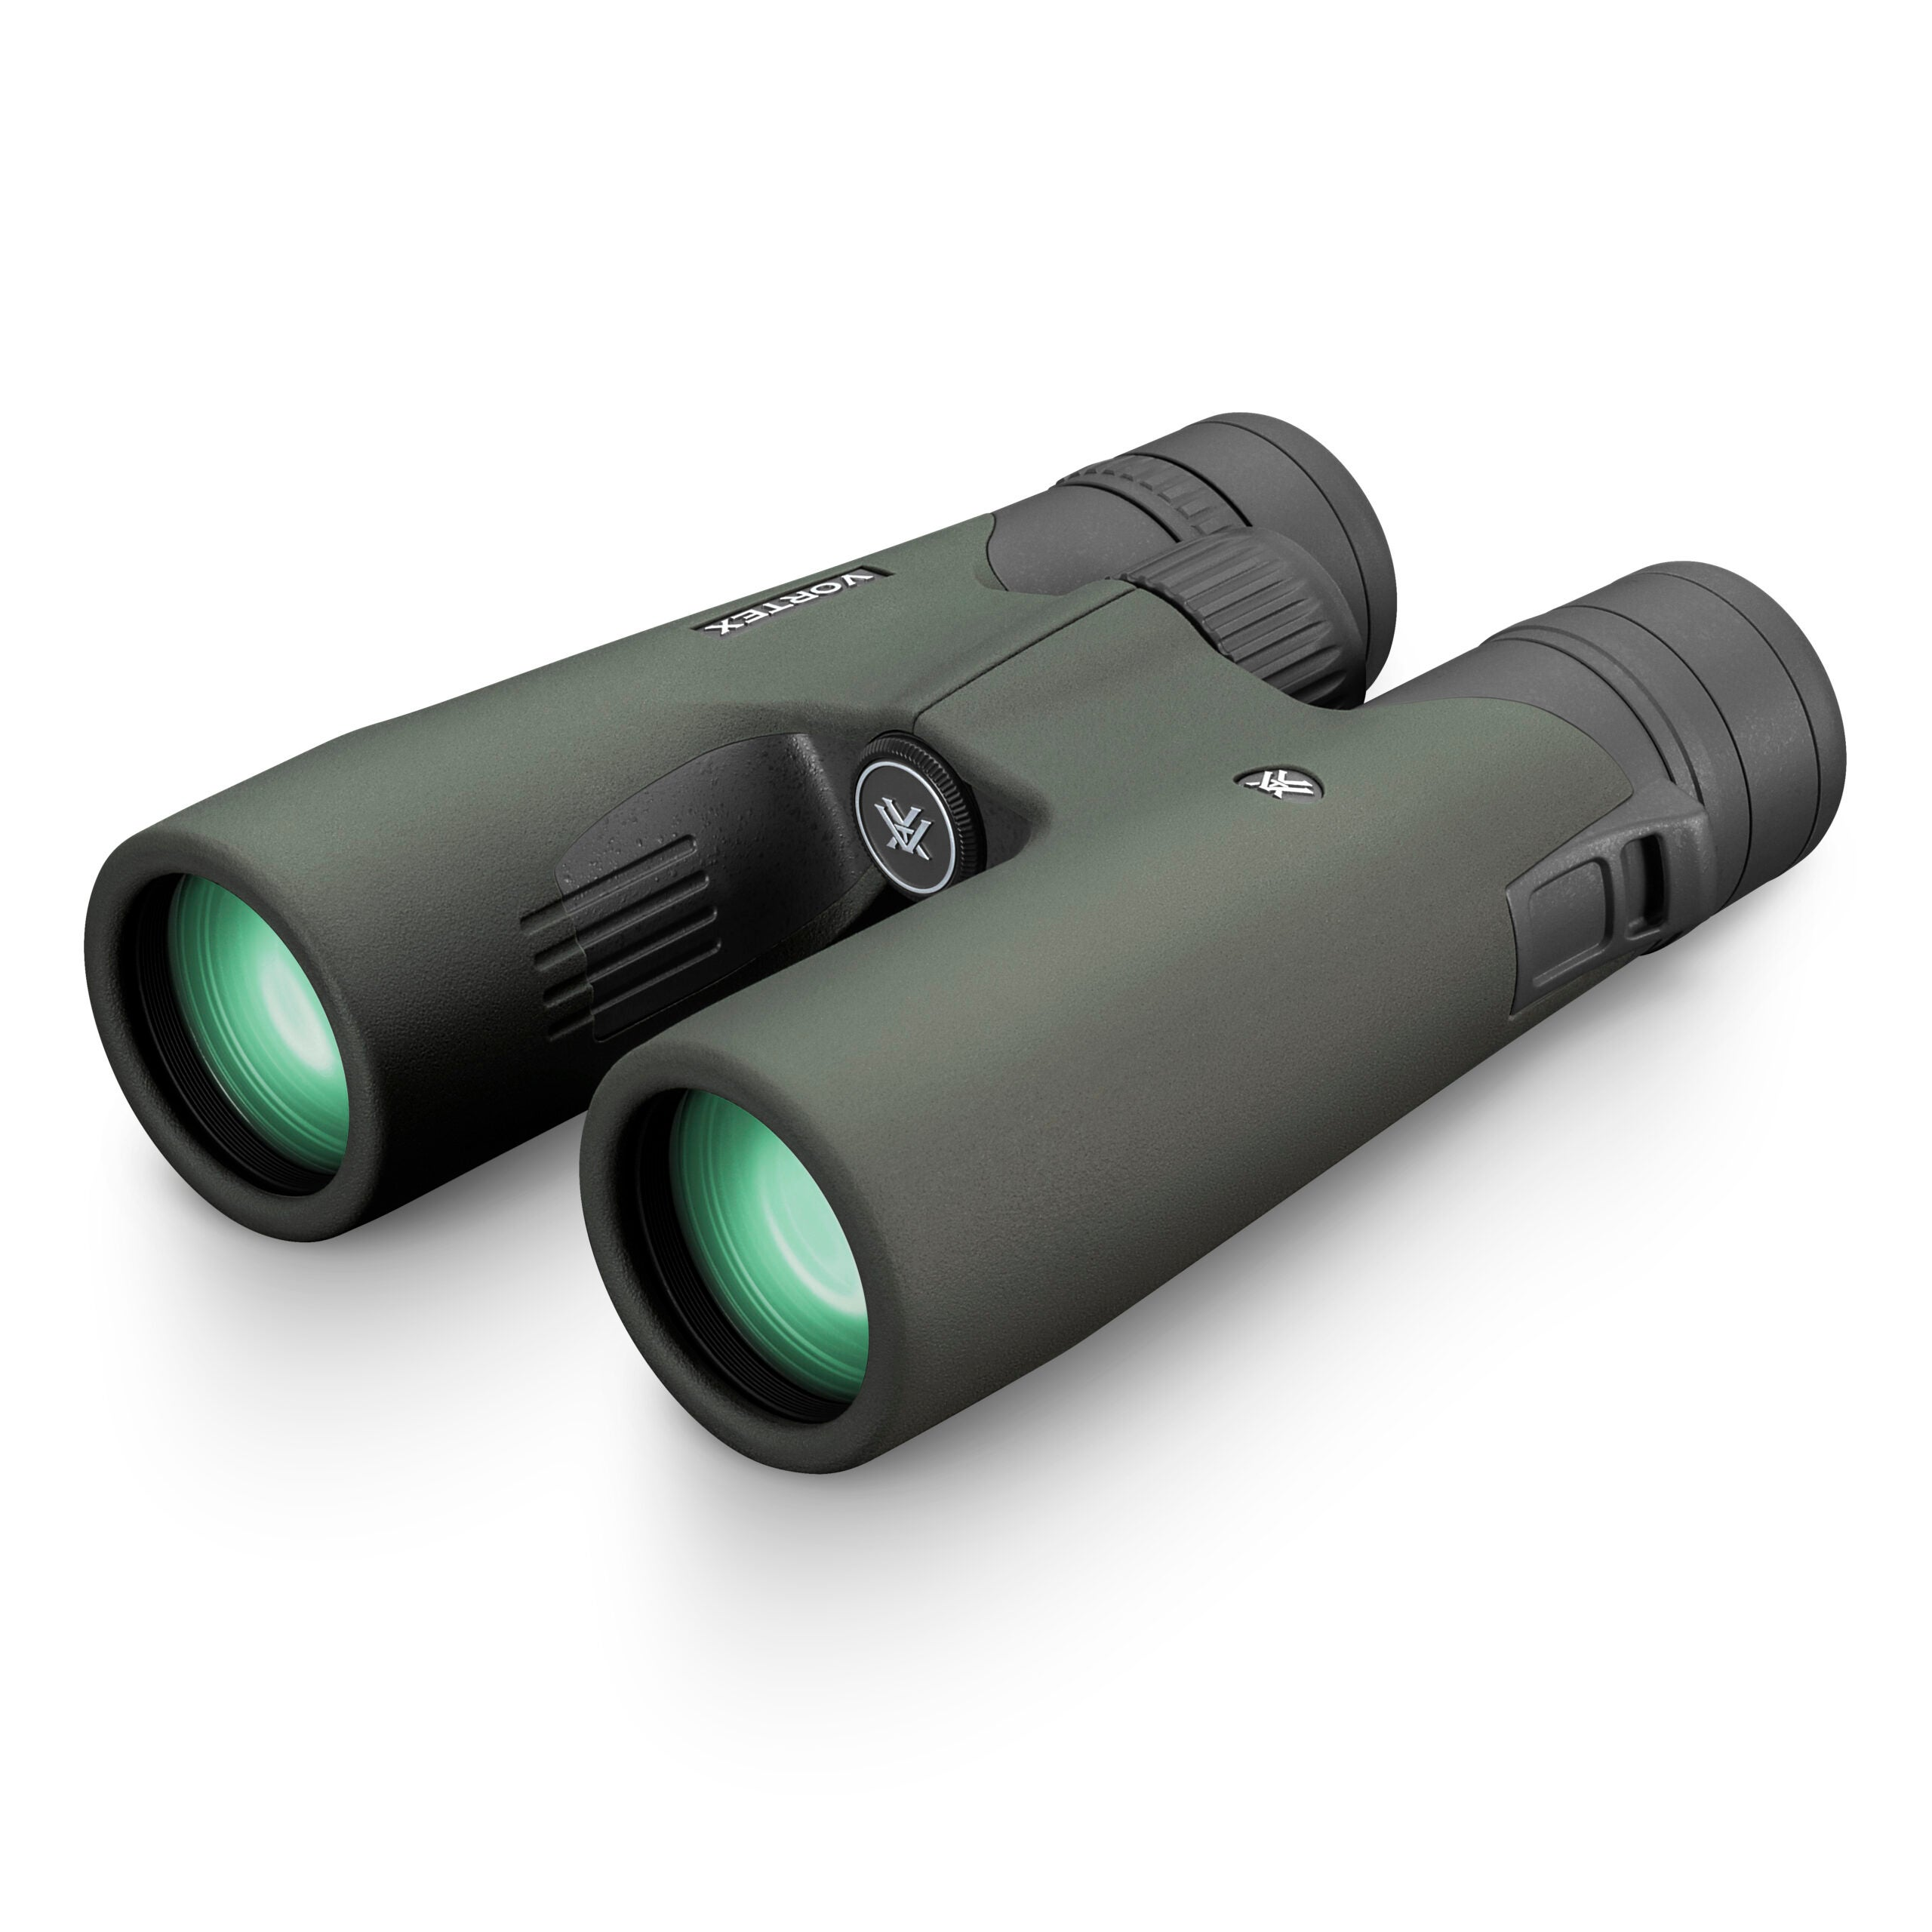 Green binoculars with blue lenses on a white background.